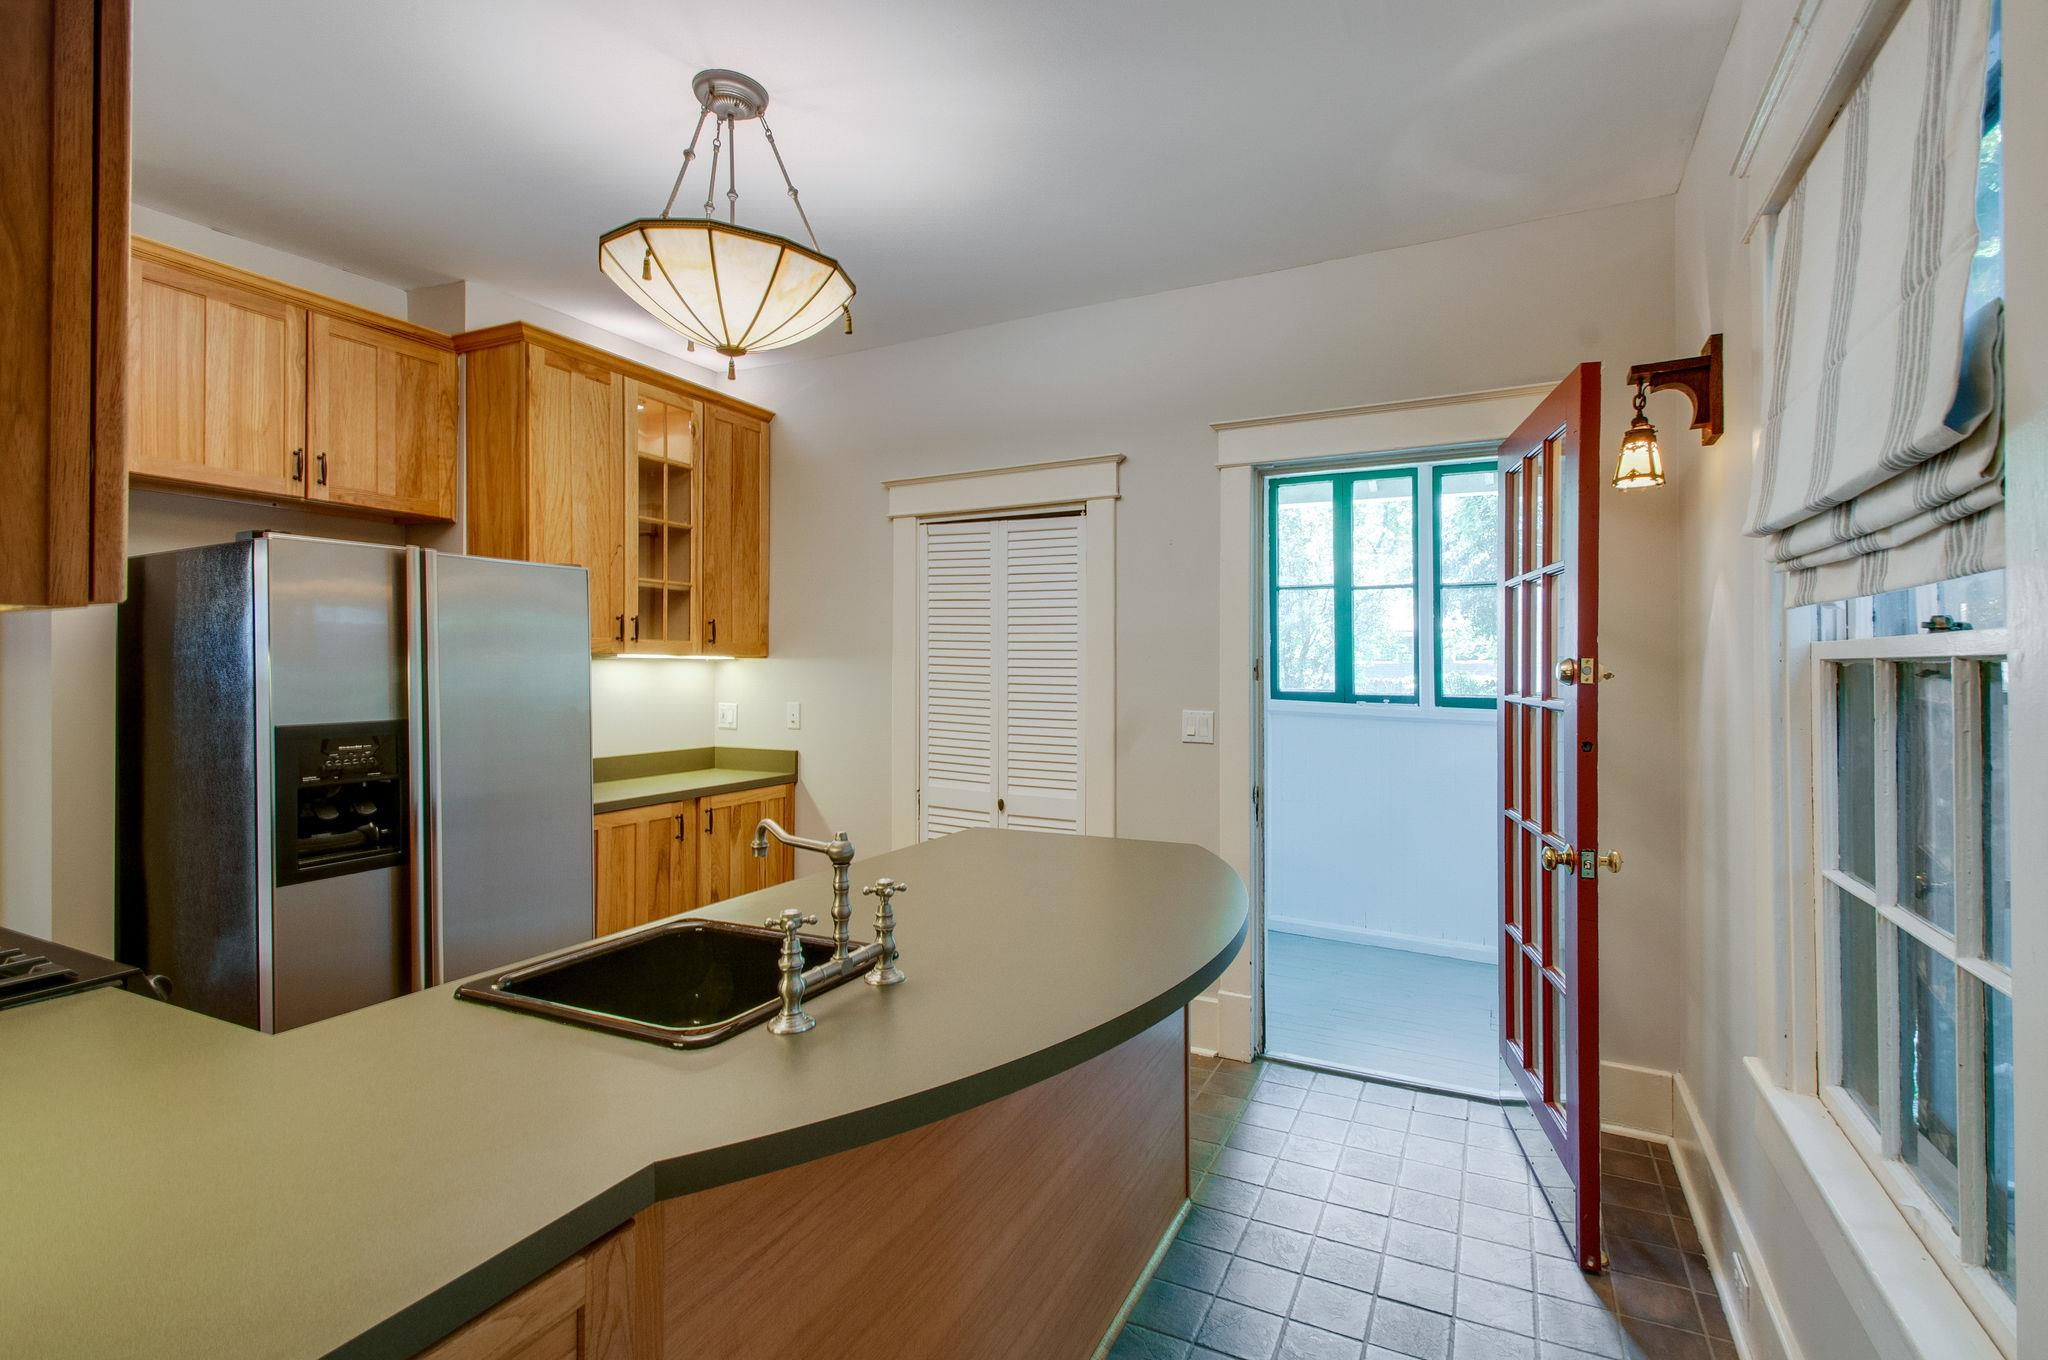 Kitchen in our 1920s California Bungalow